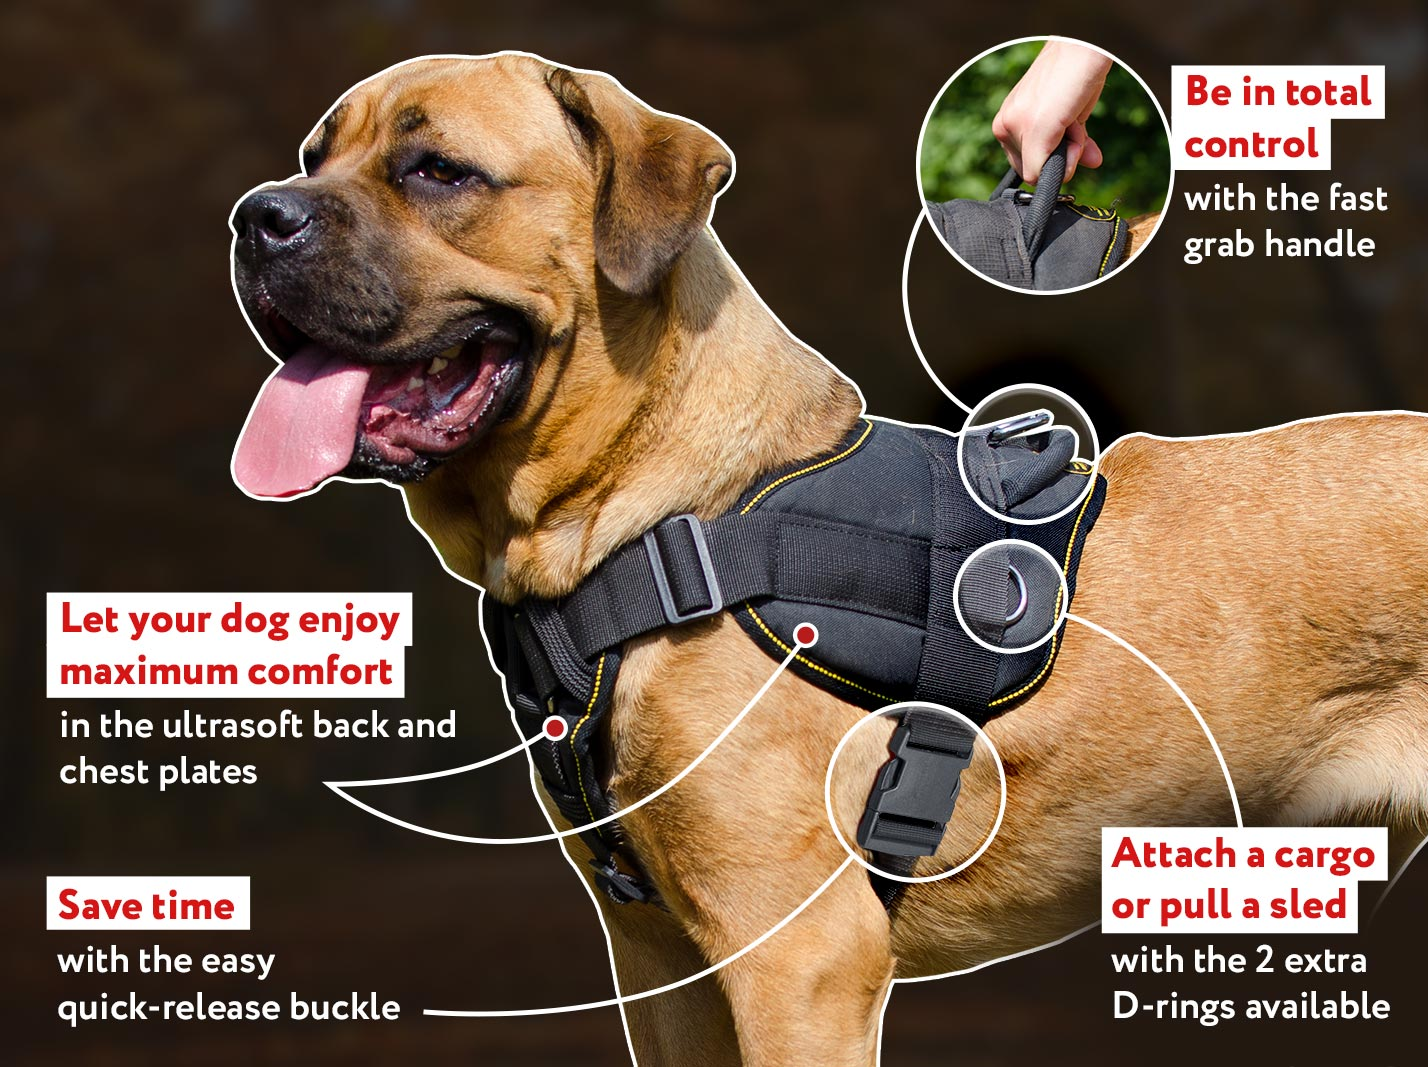 Mastiff Pulling, Tracking, Walking and Training Nylon Harness